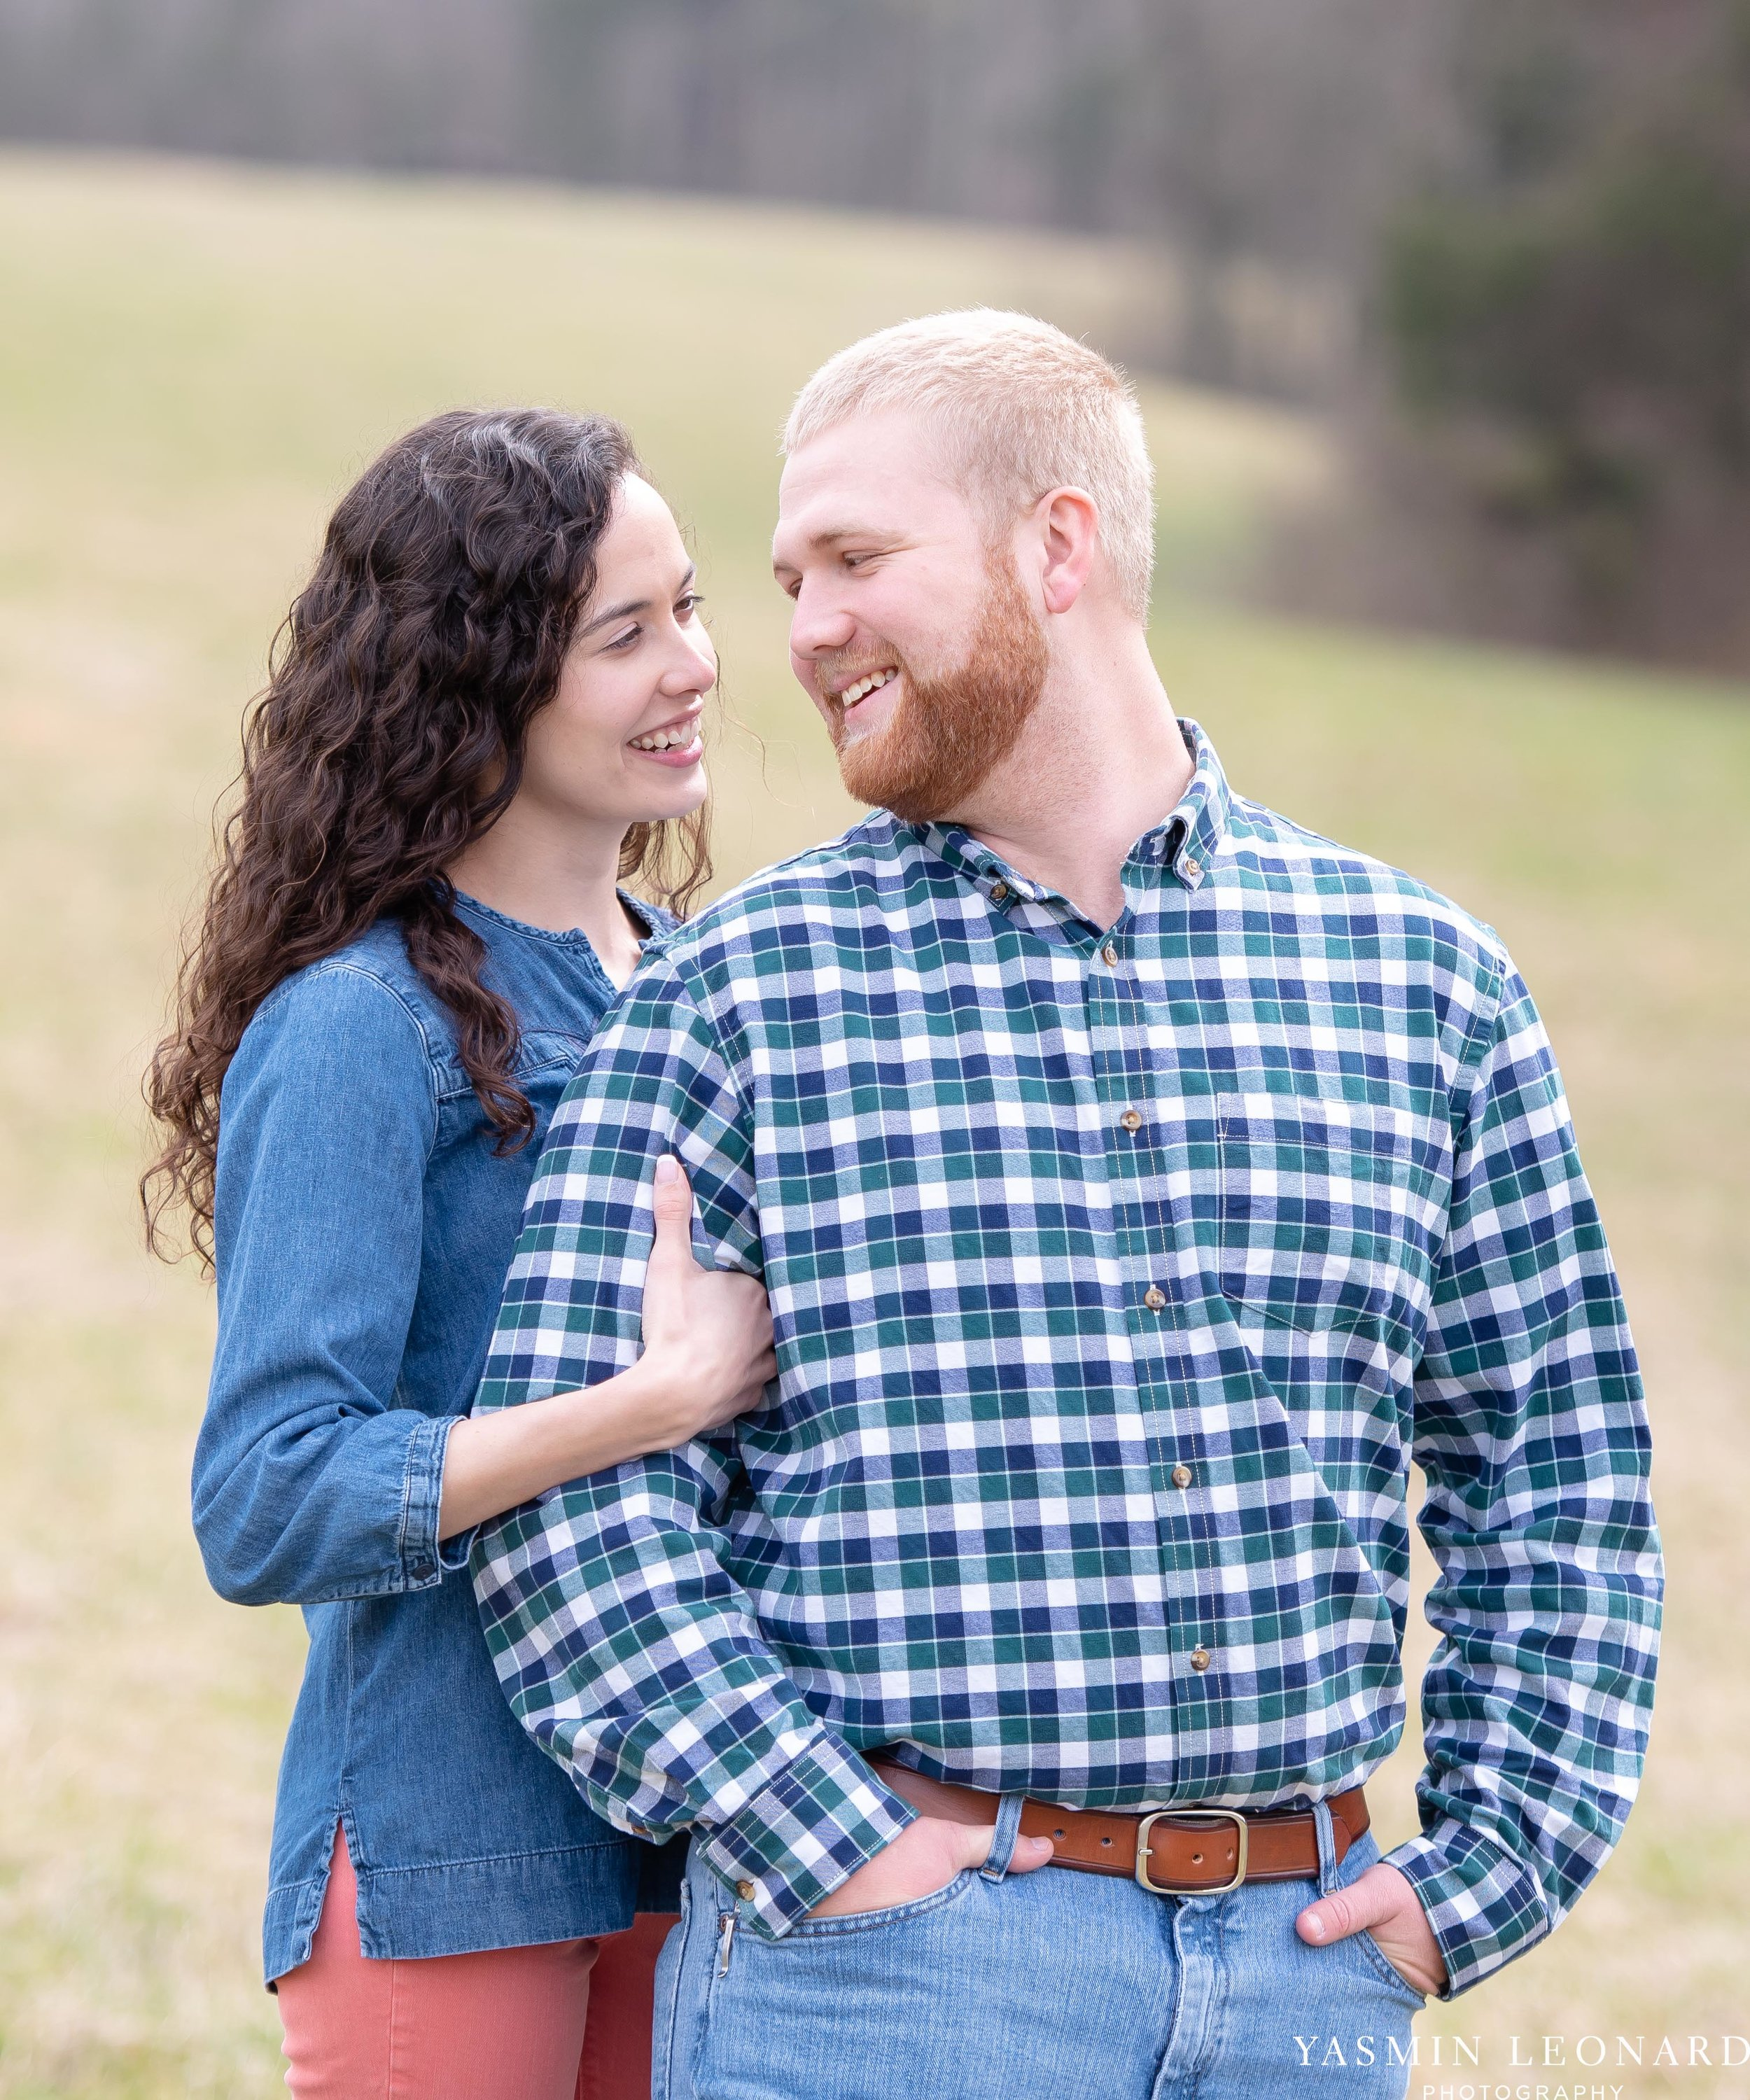 Wallburg Engagement Session - Country Engagement Session - High Point Engagement Session - Outdoor Engagement Session - Engagement Photos - Barn Engagement Photos - NC Photographer - High Point Photographer-3.jpg